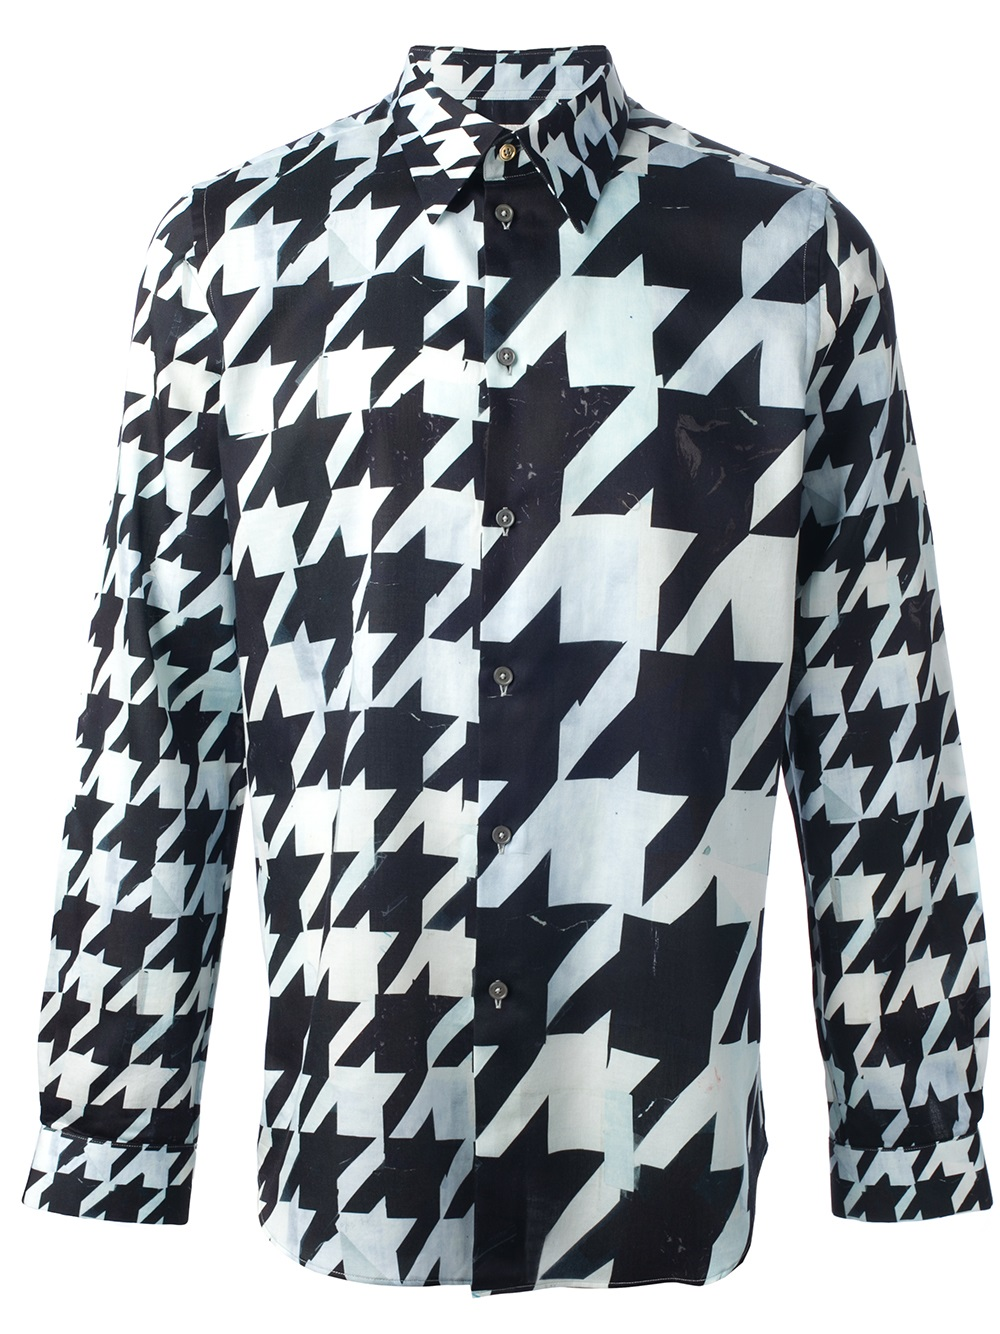 Lyst Paul Smith Houndstooth Shirt In Black For Men